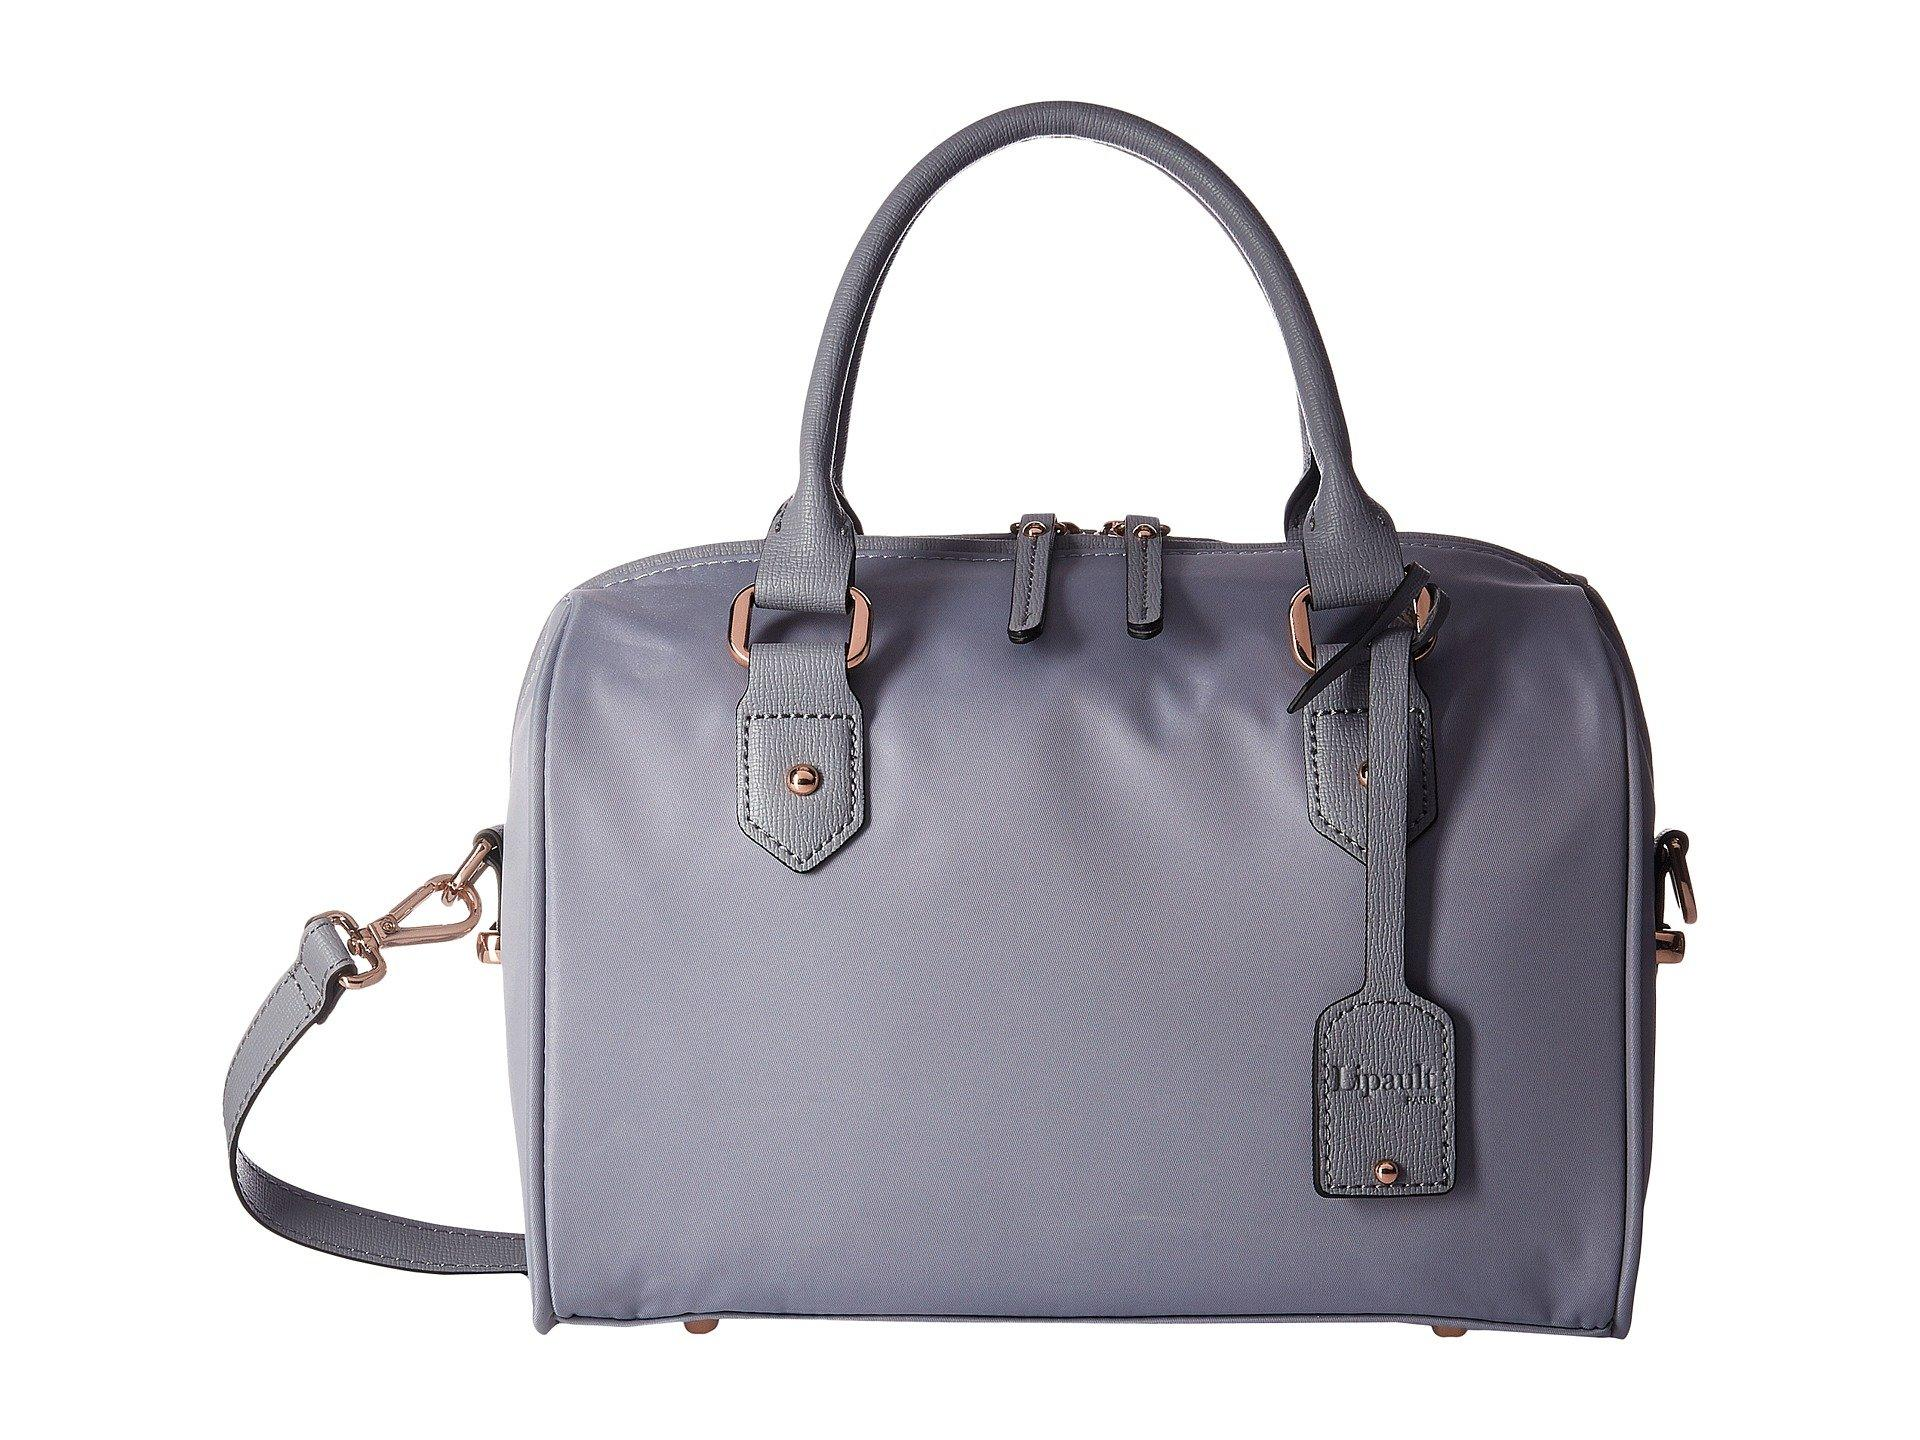 c38eed9a5 Lipault Plume Avenue Bowling Small Bag in Gray - Lyst